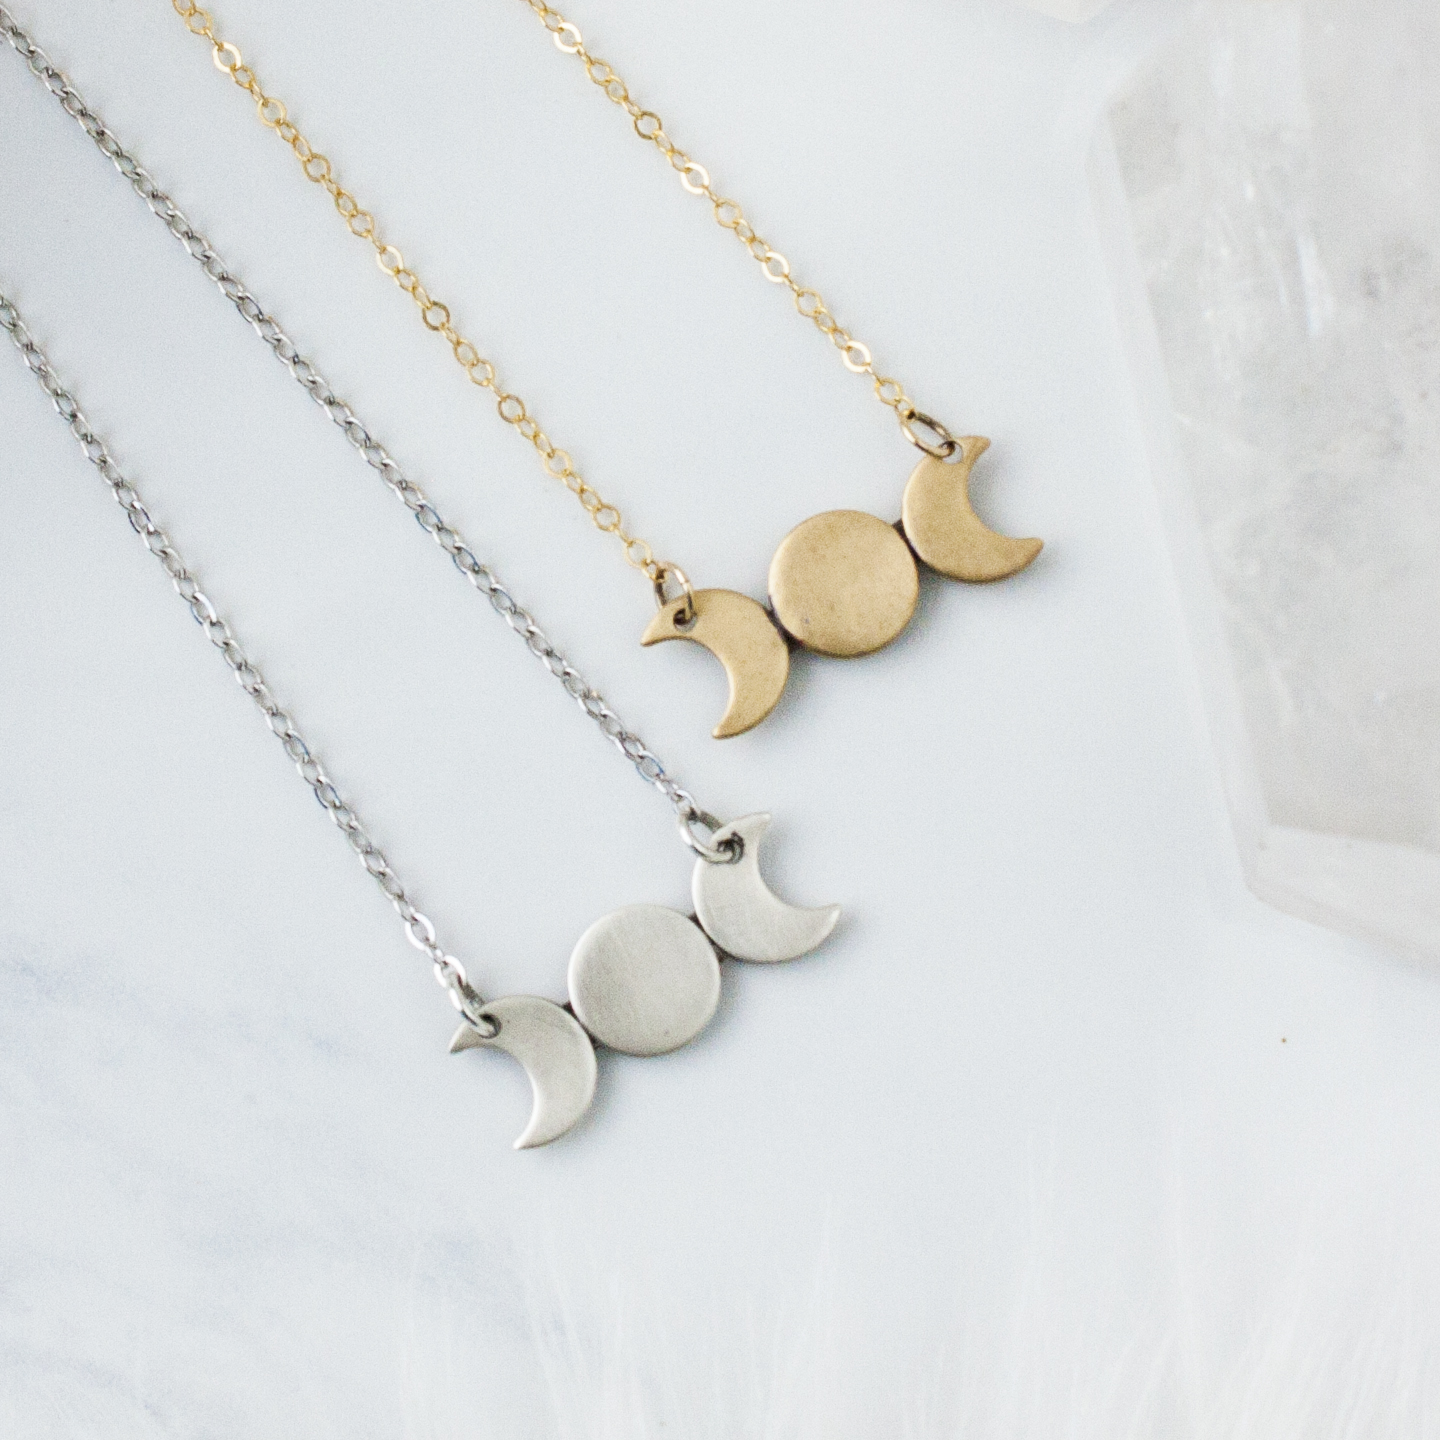 triple-goddess-necklaces-11